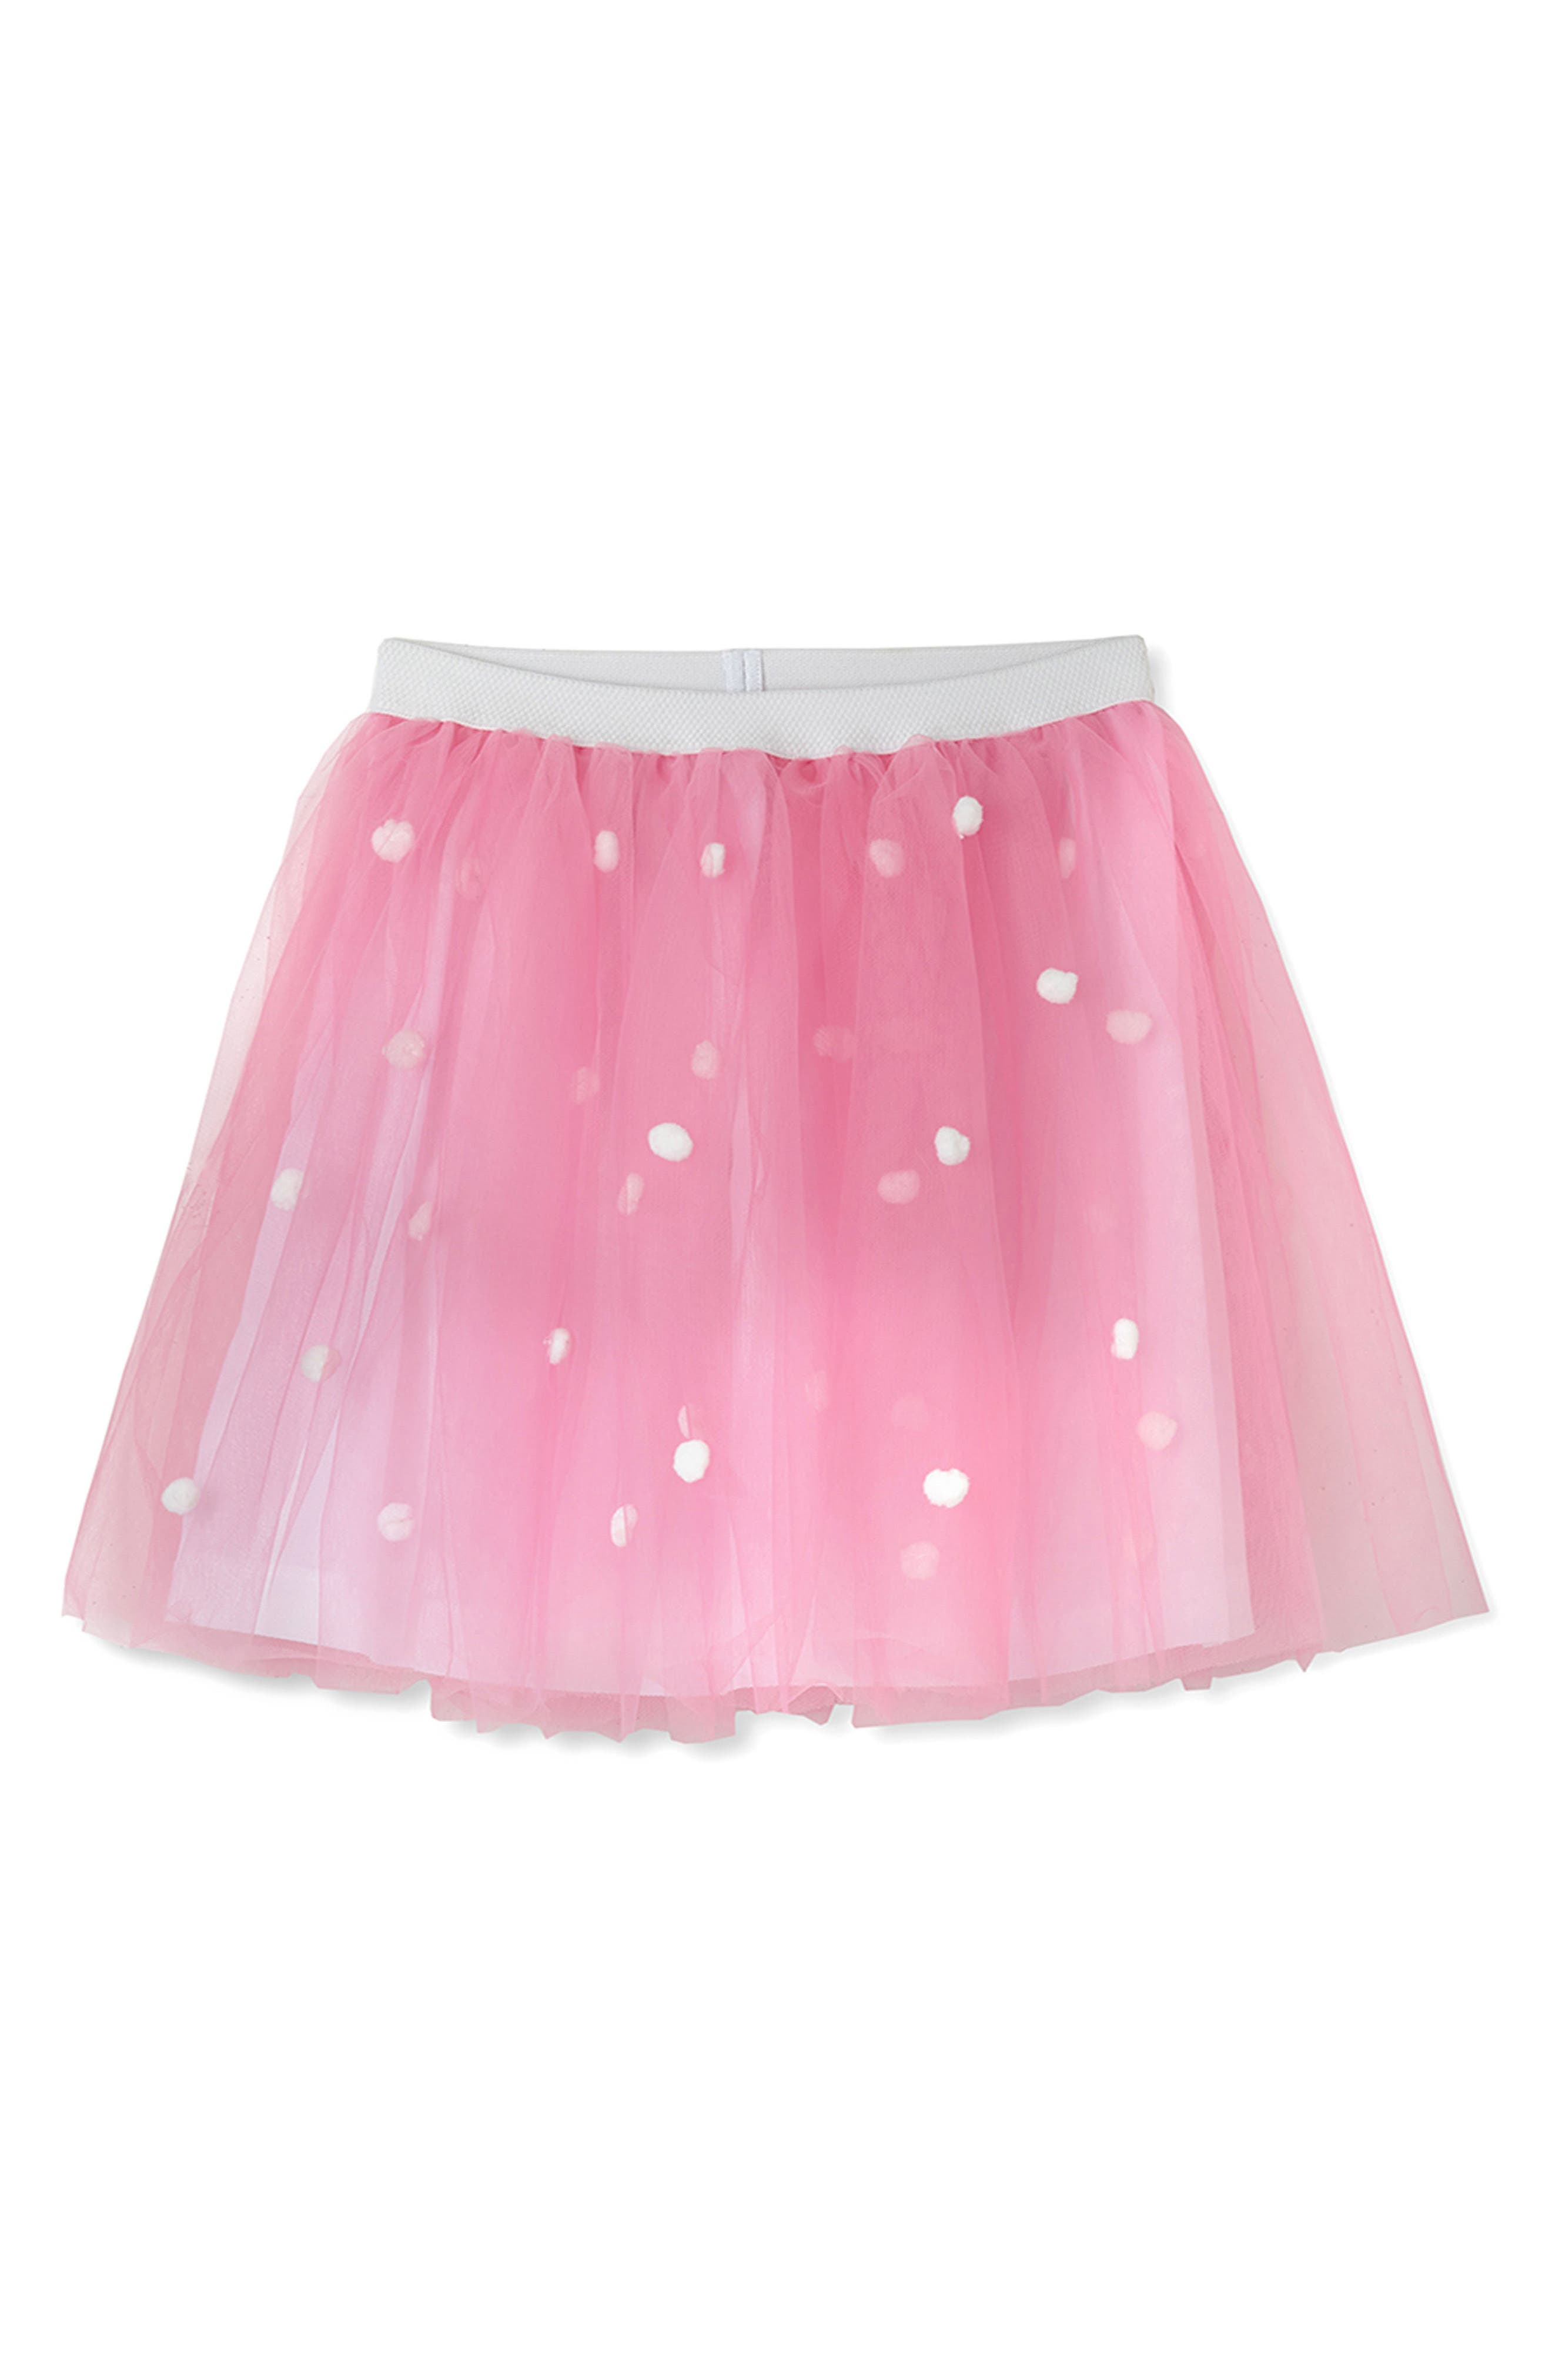 Main Image - Stella Cove Tulle Skirt (Toddler Girls & Little Girls)